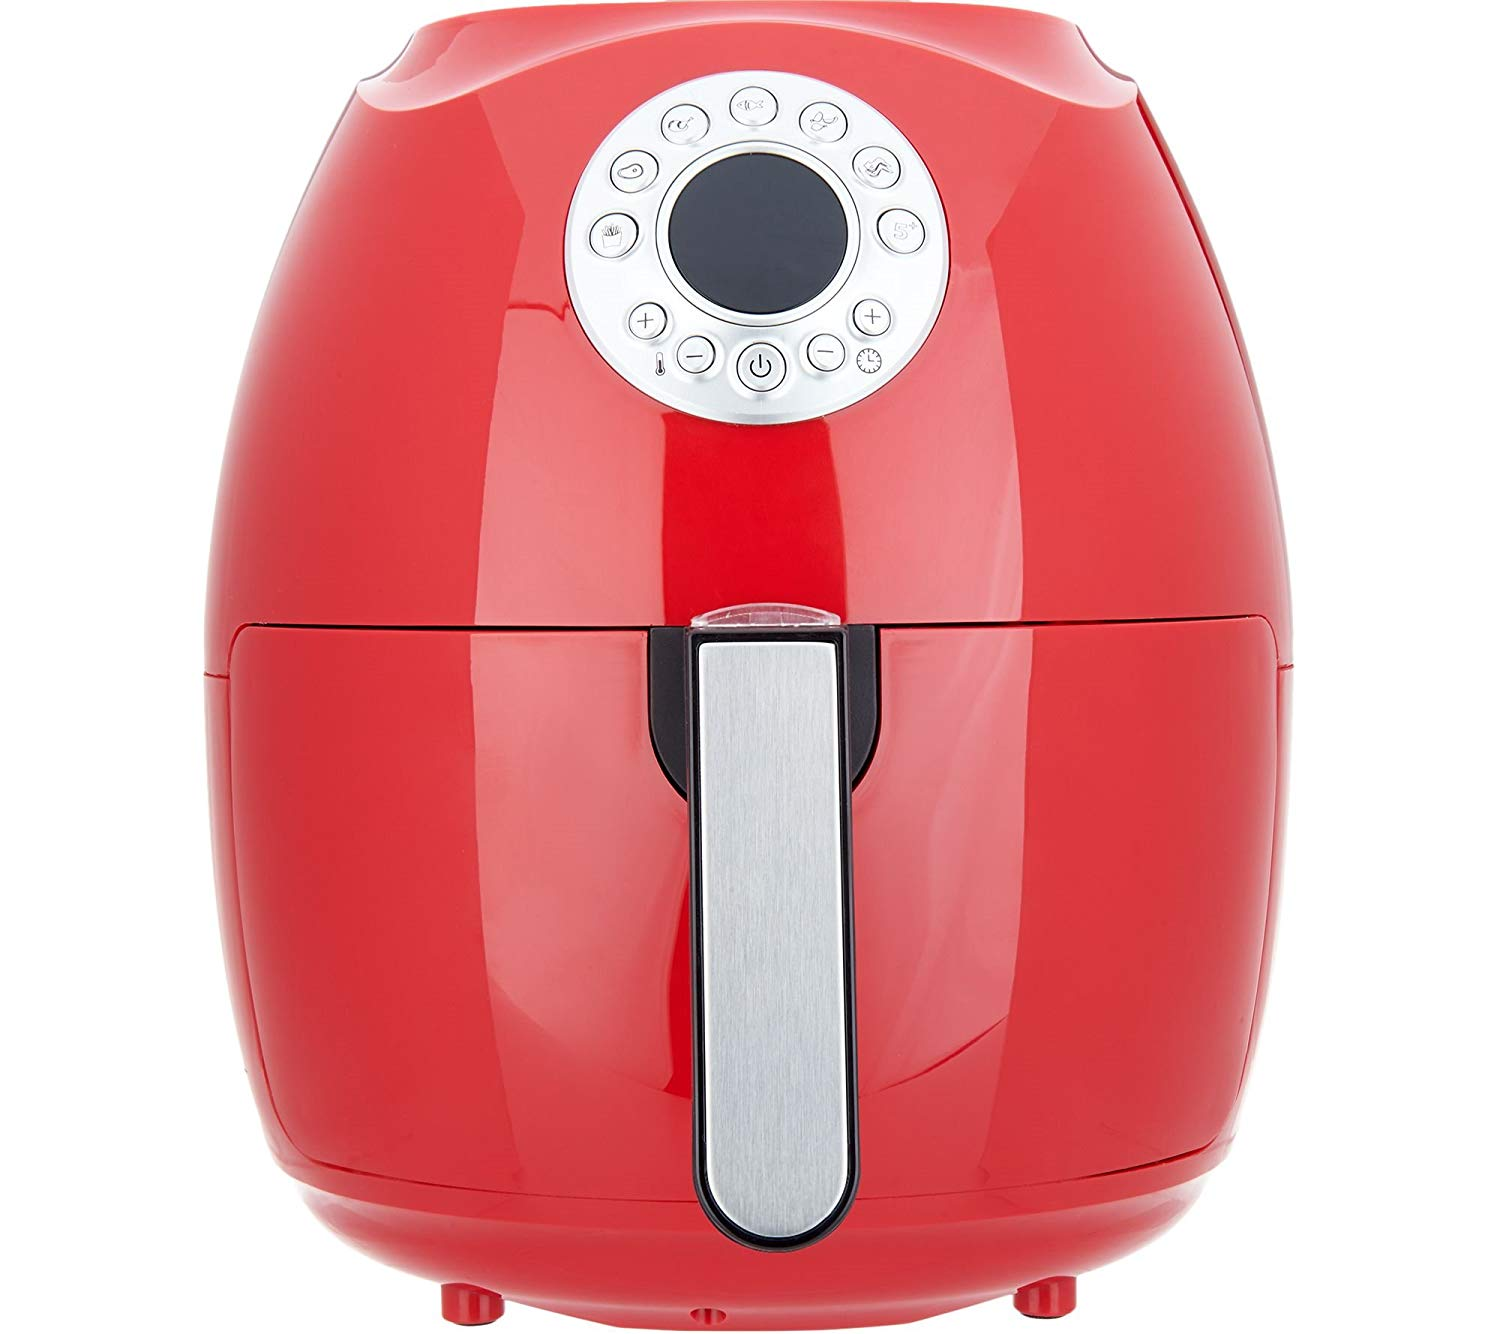 "Cook's Essentials 600187470308 3.4-Qt Digital w/Presets & Pans (Red), Air fryer 12-1/2""H x 10-1/2""Diam, weighs 9 lbs"